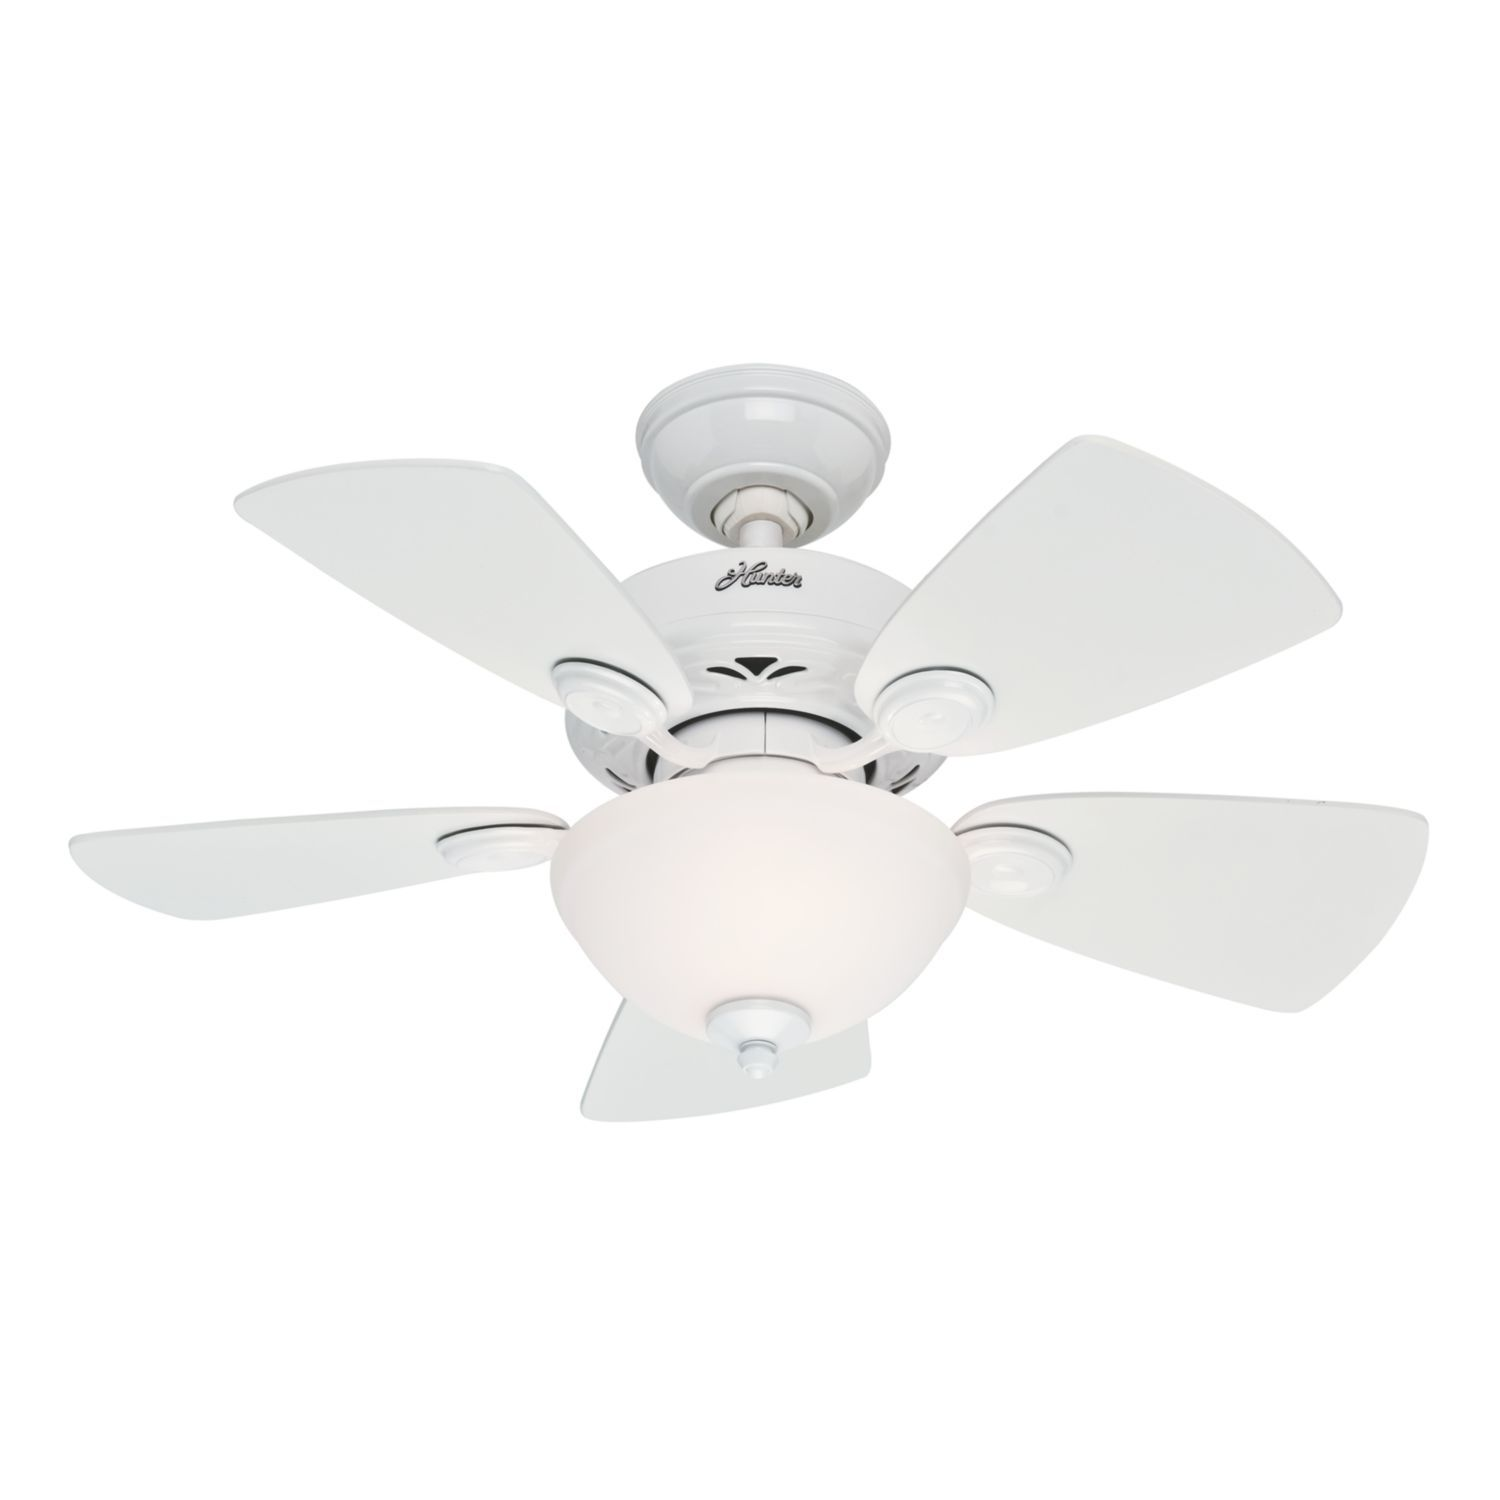 Best Ceiling Fans For Small Rooms 34ceiling Fan With Light Teal And Green Gender Neutral Nursery